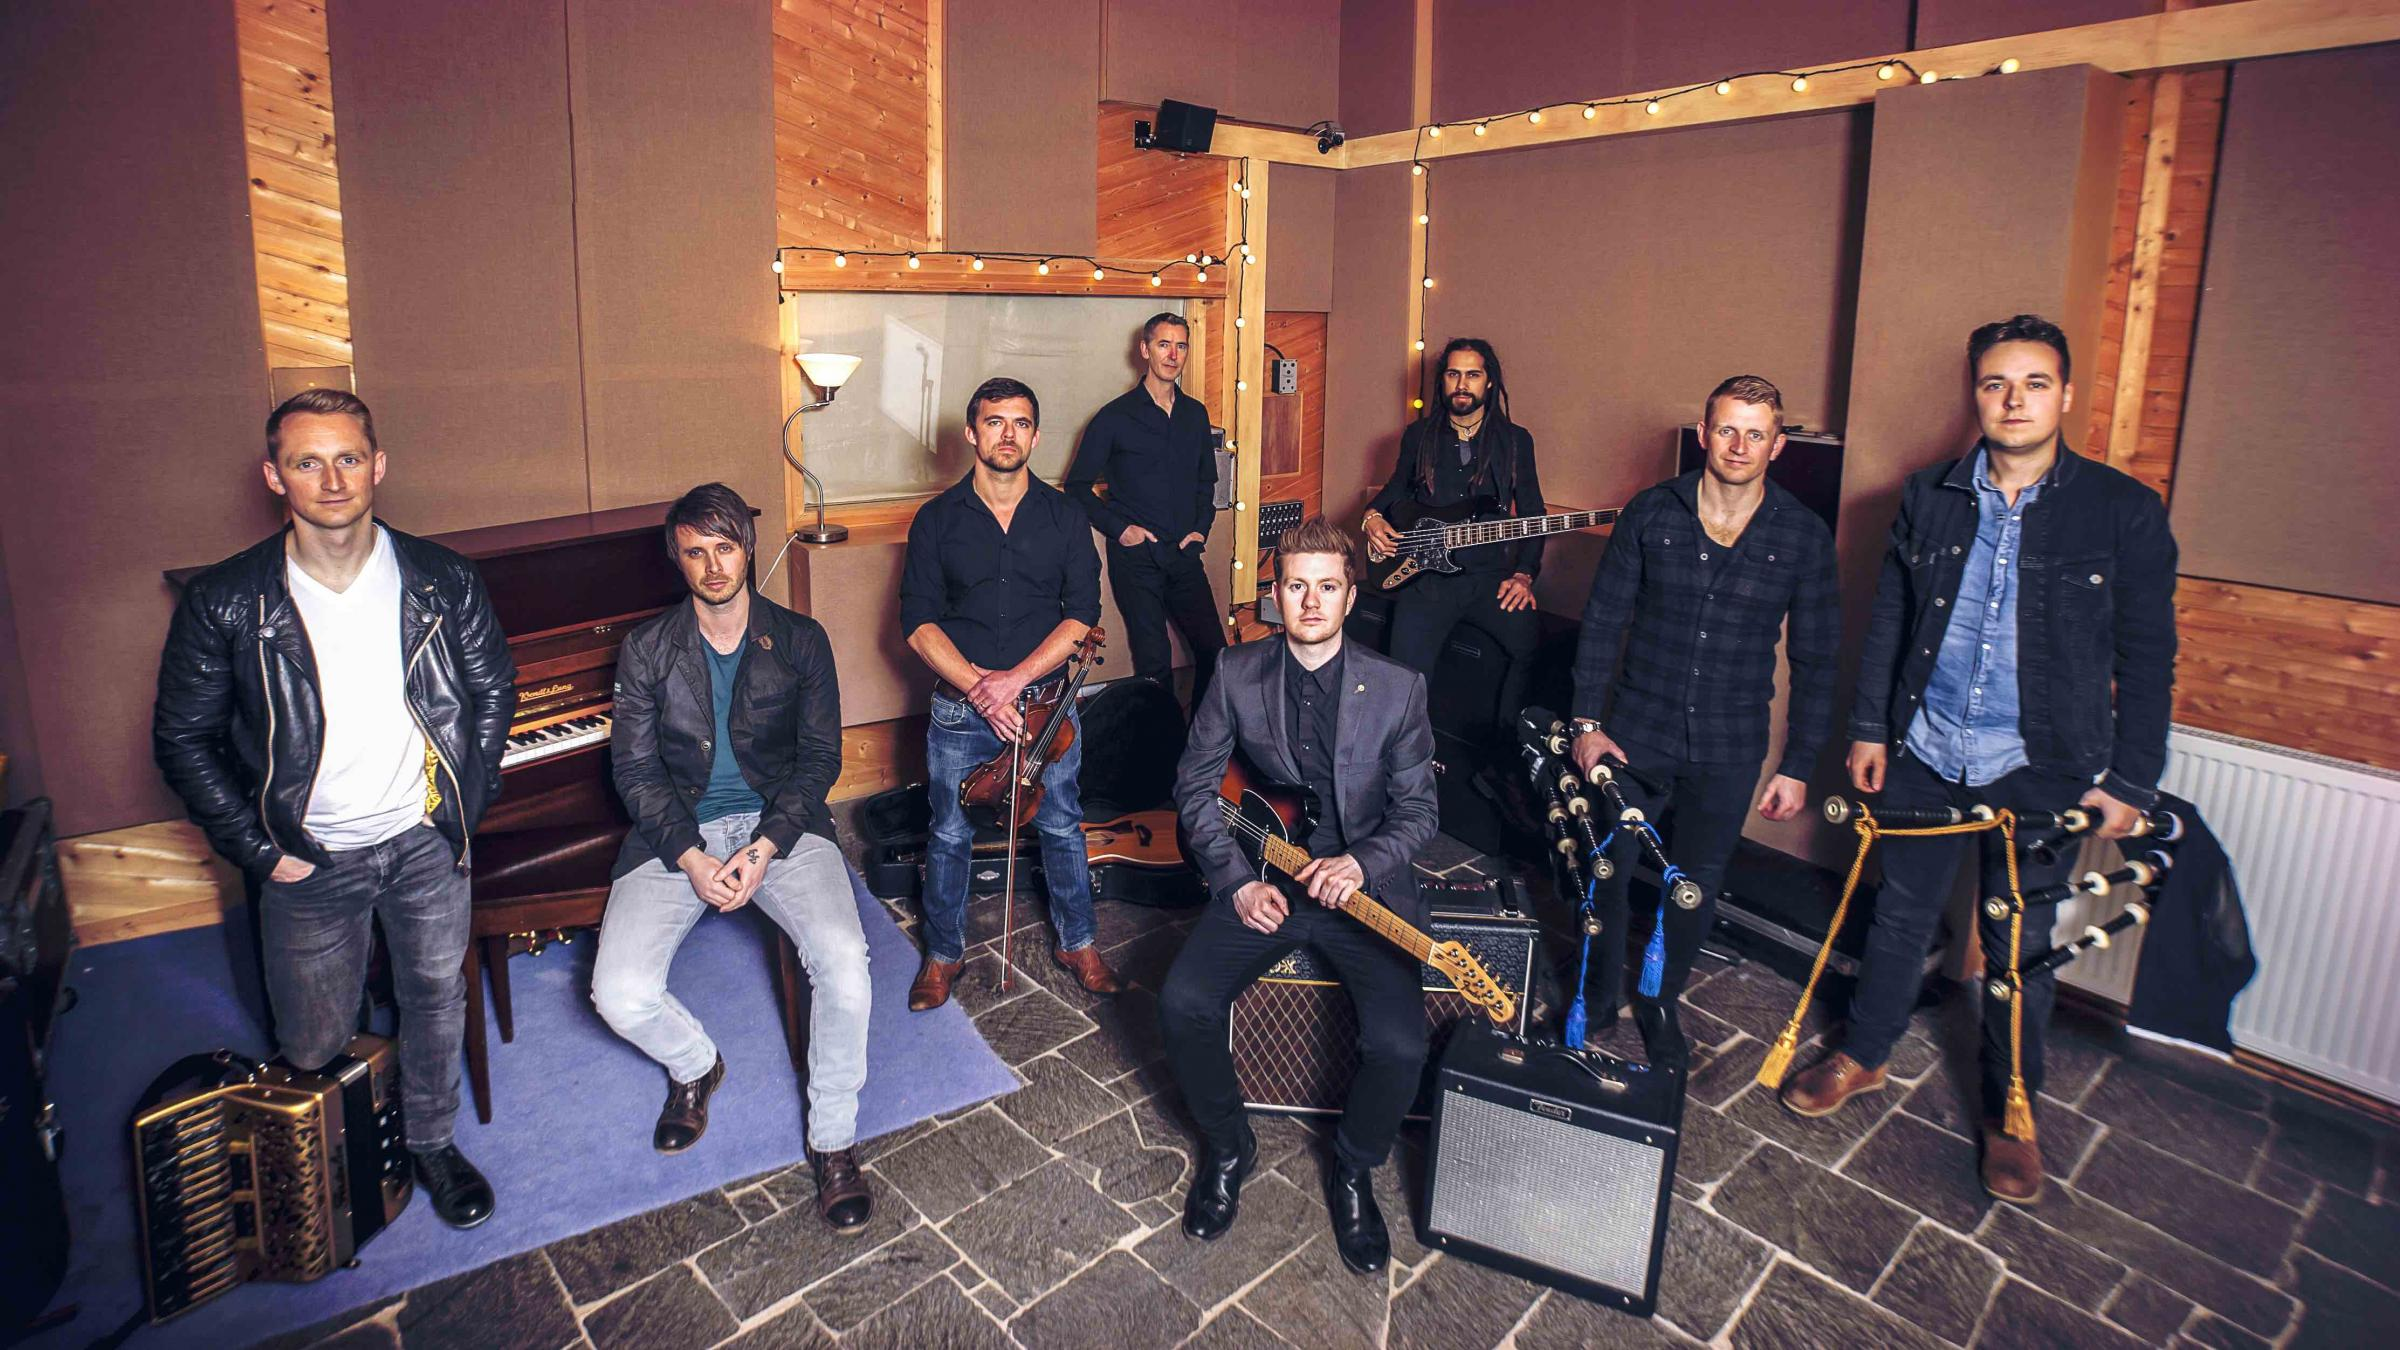 Skerryvore - The Live Forever Tour.